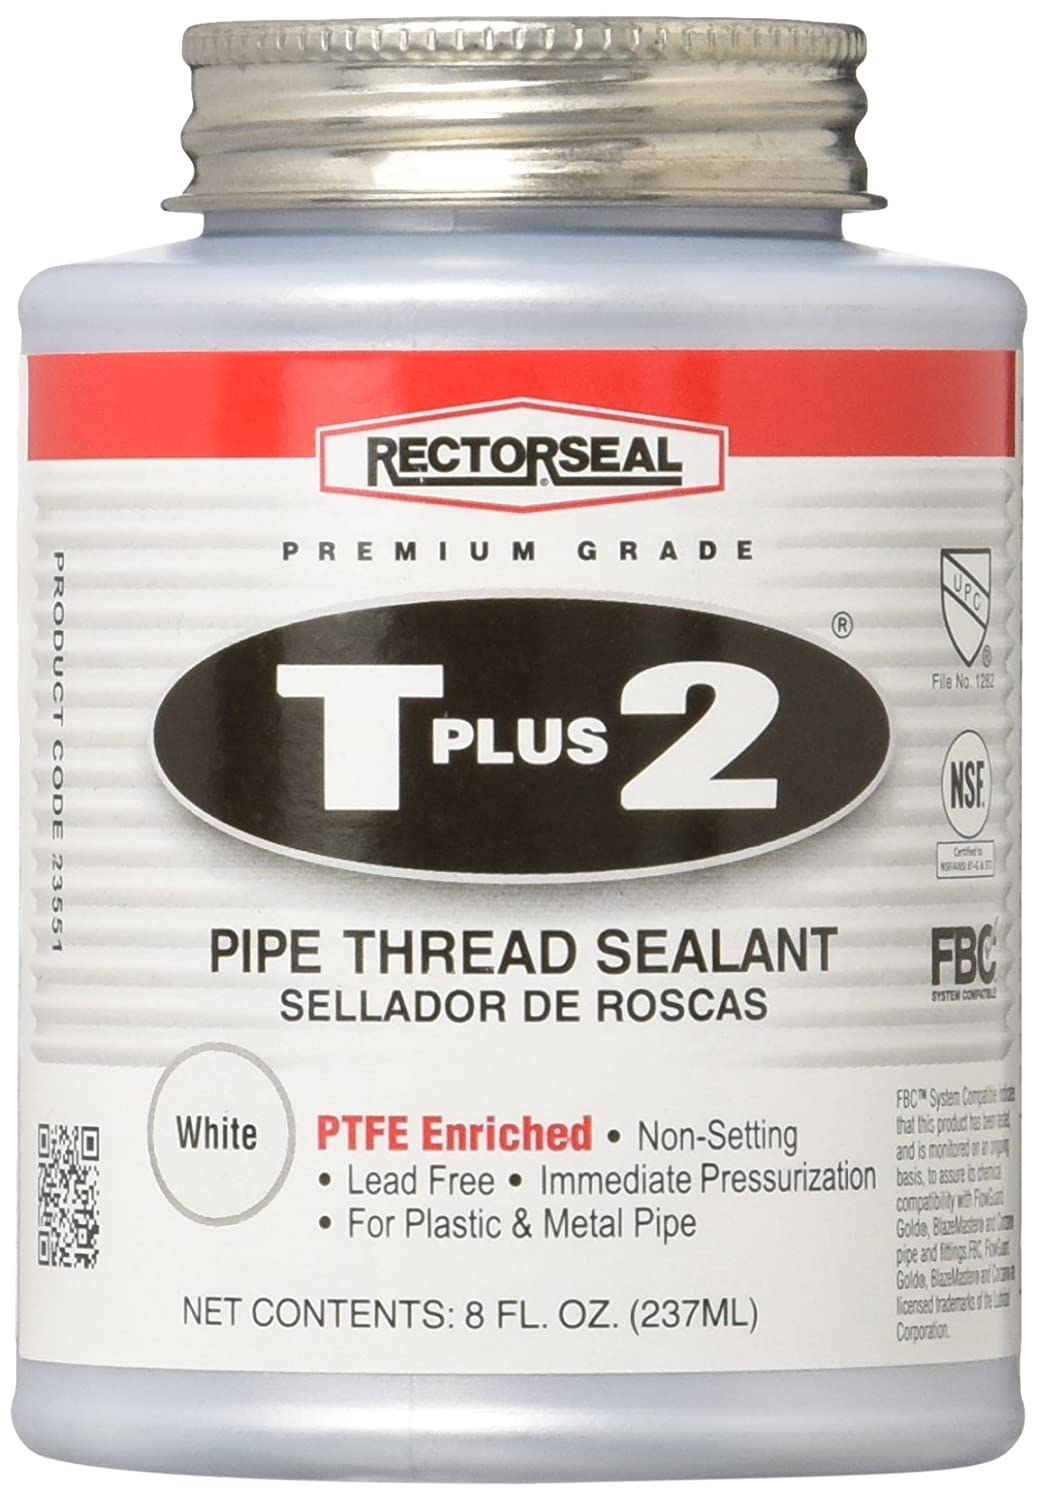 Rectorseal 23551 T Plus 2 Pipe Thread Sealant with PTFE, 1/2 pt Brush Top